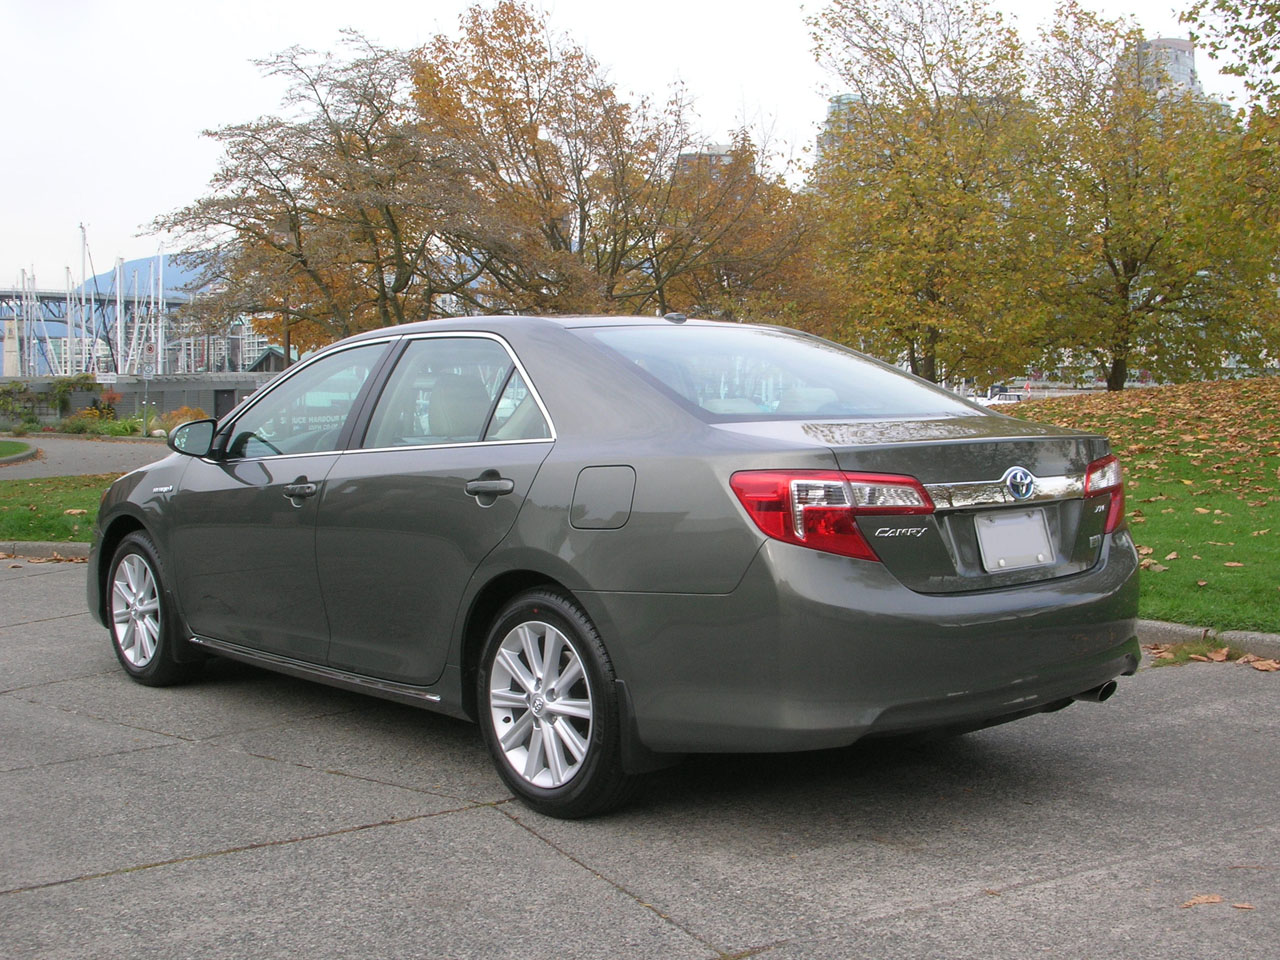 2014 toyota camry hybrid xle road test review carcostcanada. Black Bedroom Furniture Sets. Home Design Ideas